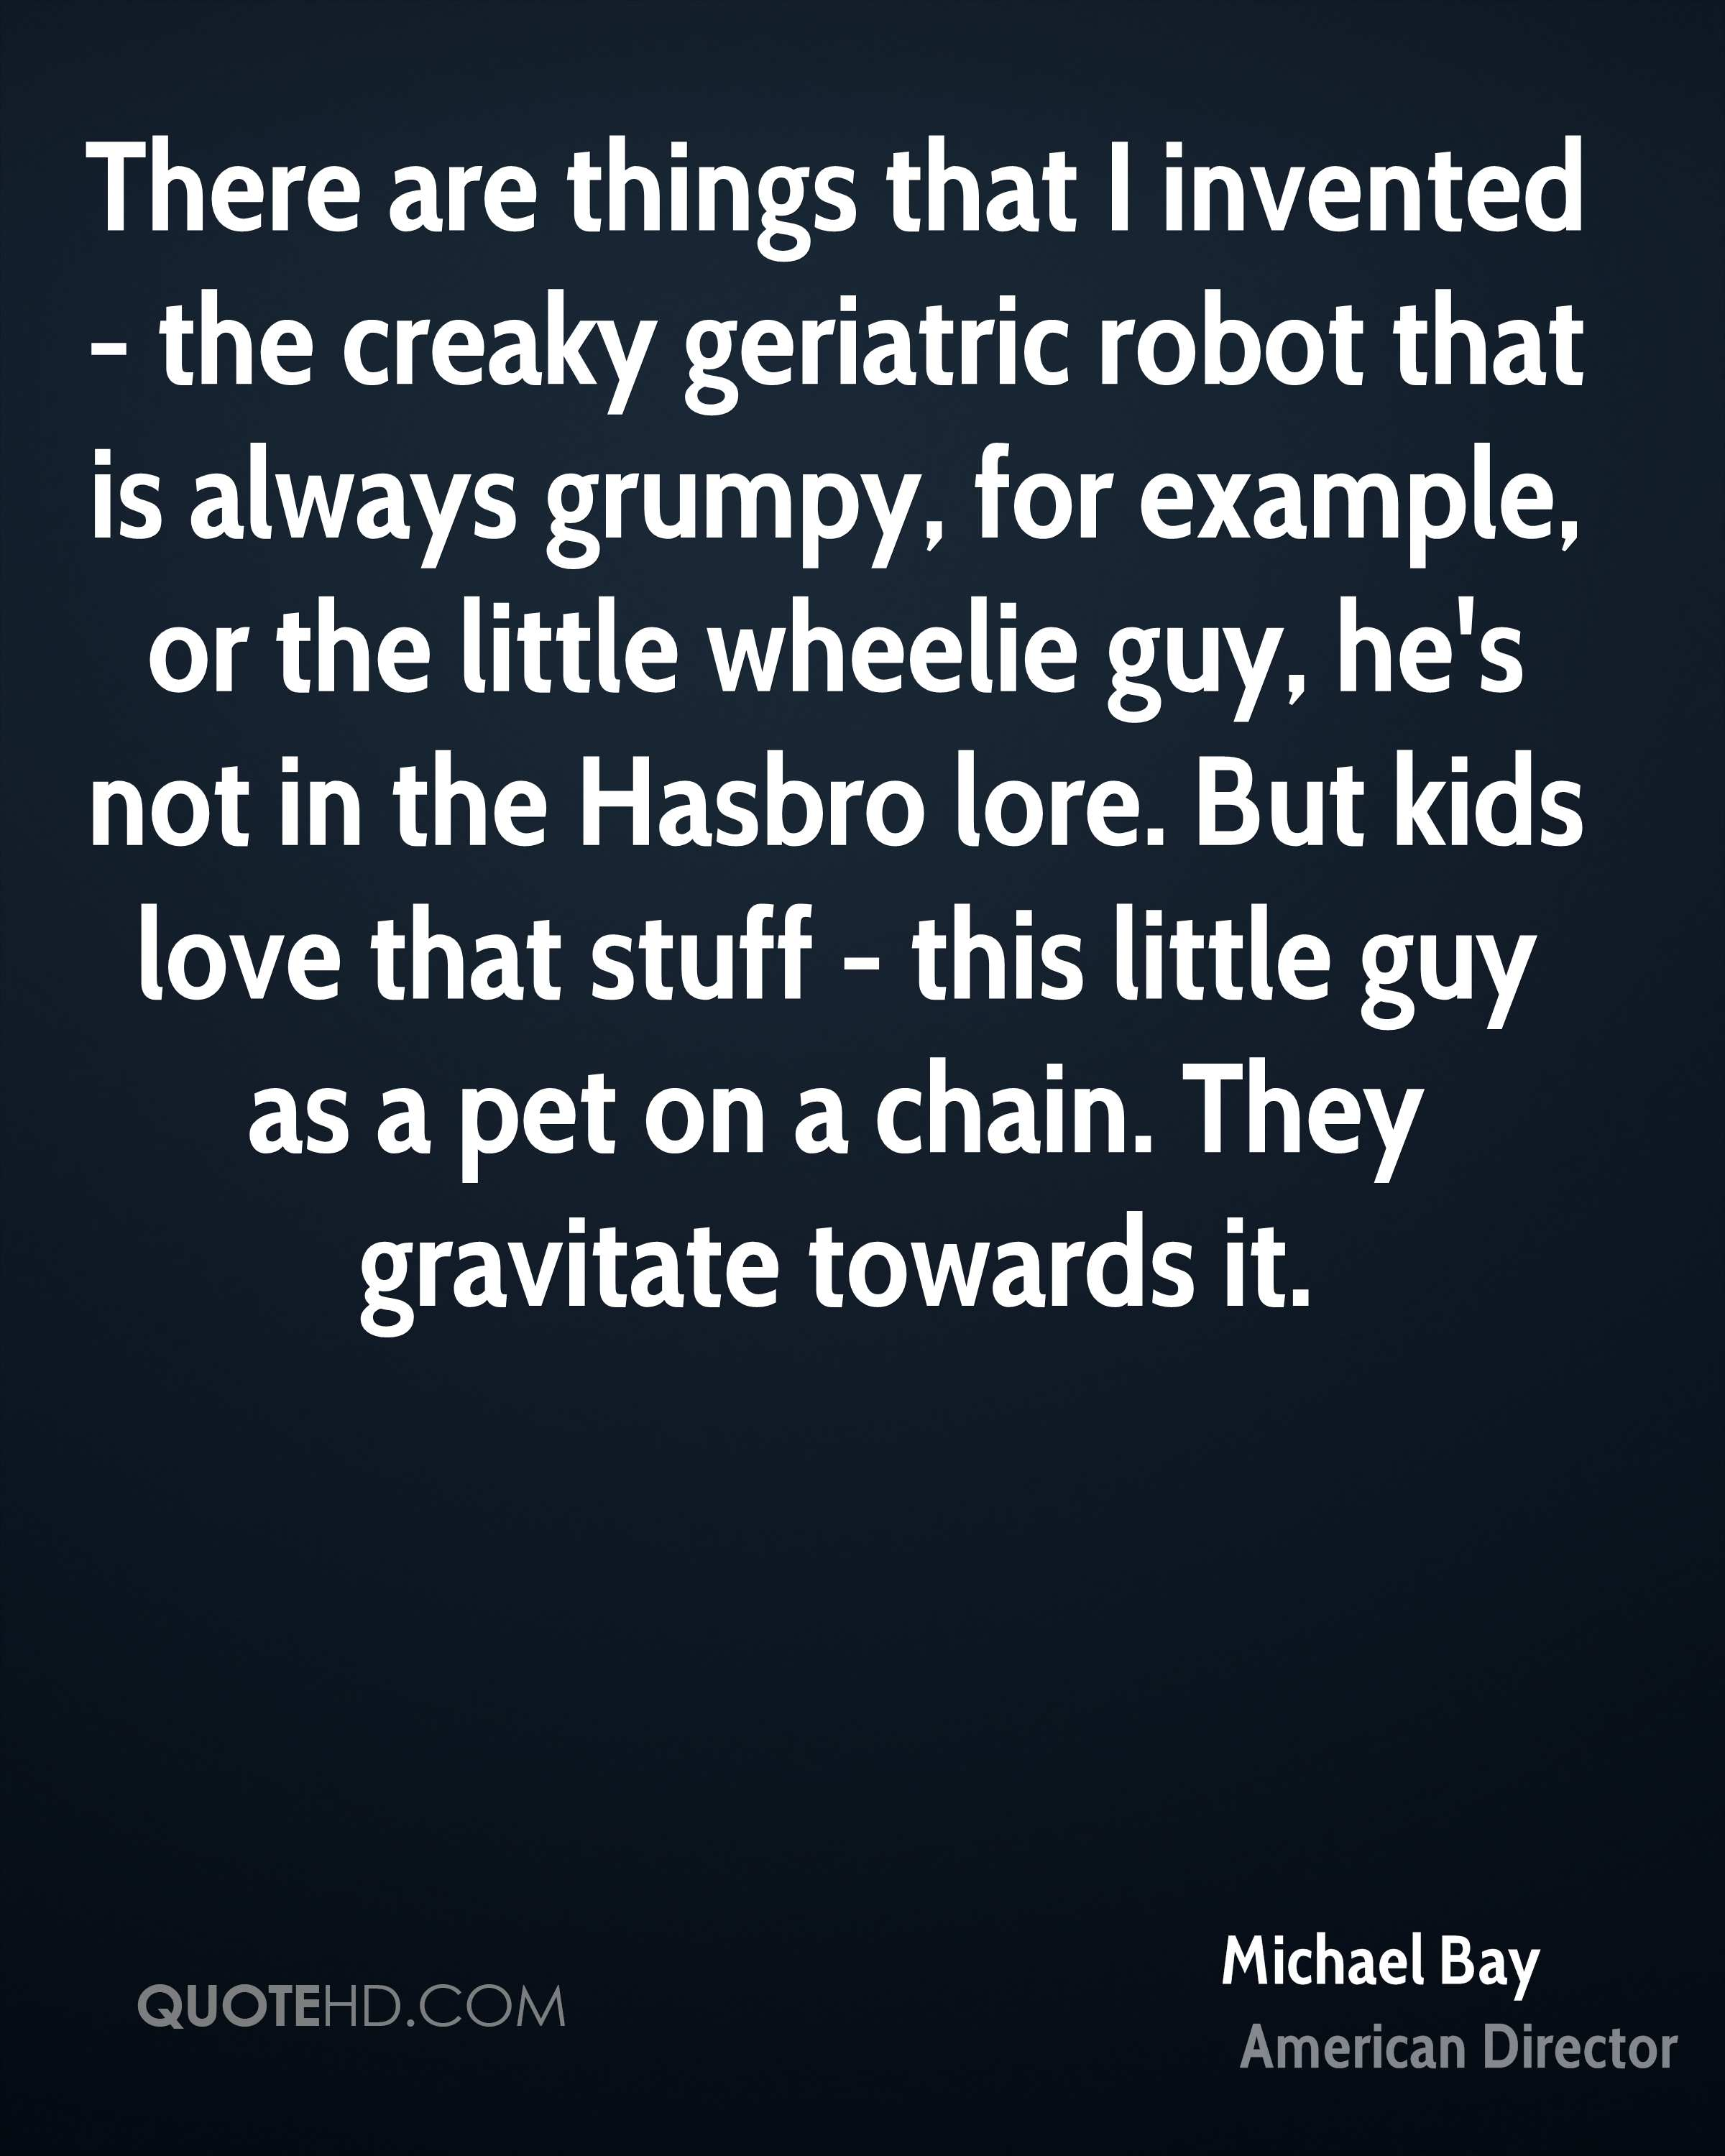 There are things that I invented - the creaky geriatric robot that is always grumpy, for example, or the little wheelie guy, he's not in the Hasbro lore. But kids love that stuff - this little guy as a pet on a chain. They gravitate towards it.